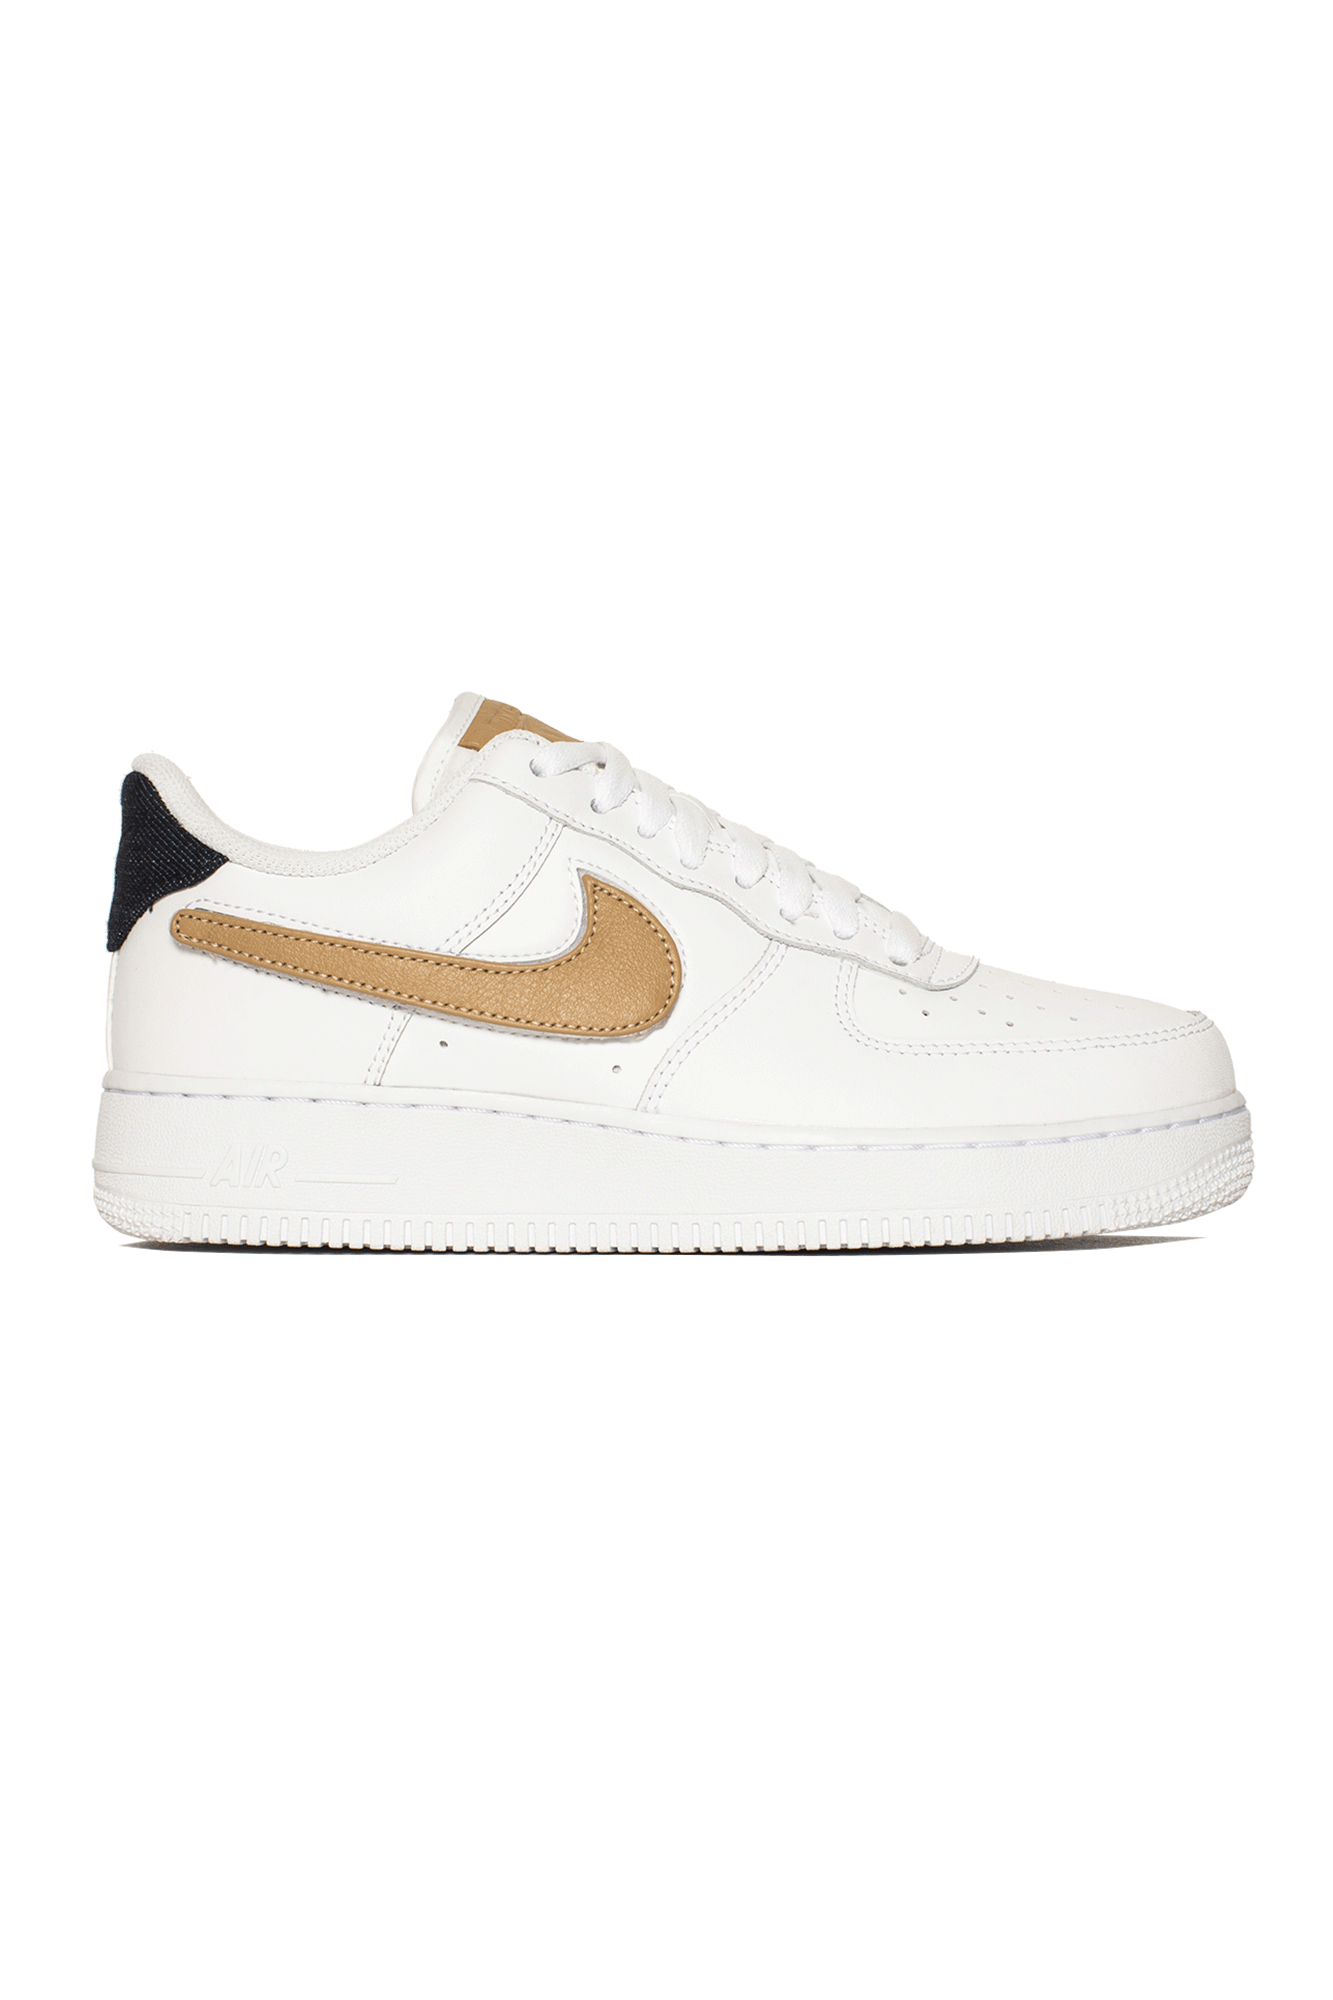 AIR FORCE 1 '07 LV8 3 Bianco